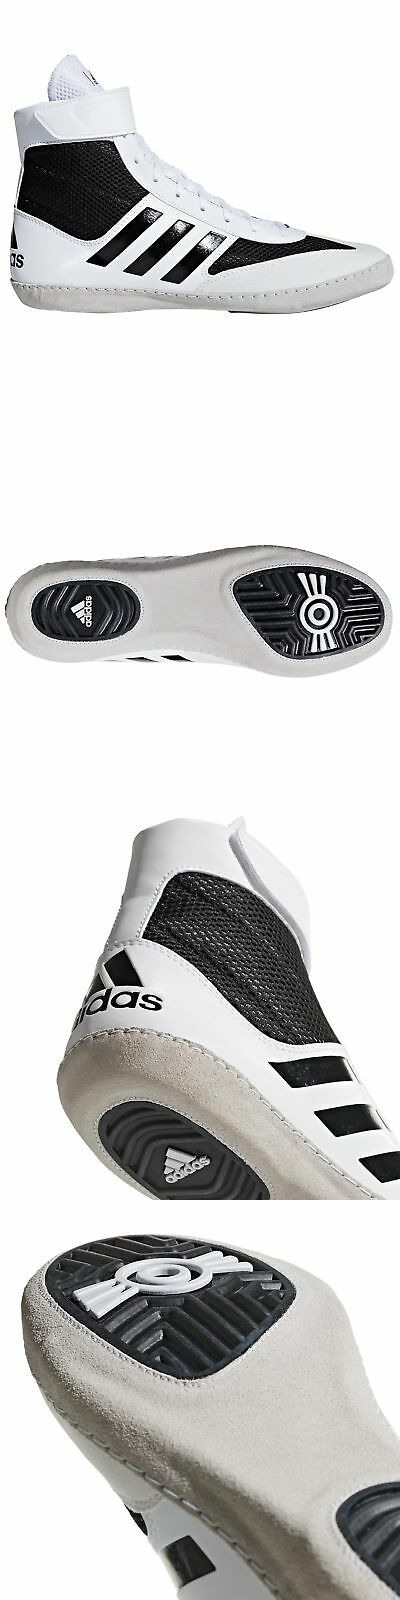 d2401f25e1e0 Accessories 36306  Adidas Combat Speed 5 Mens Adult Wrestling Shoe Boot  White Black -